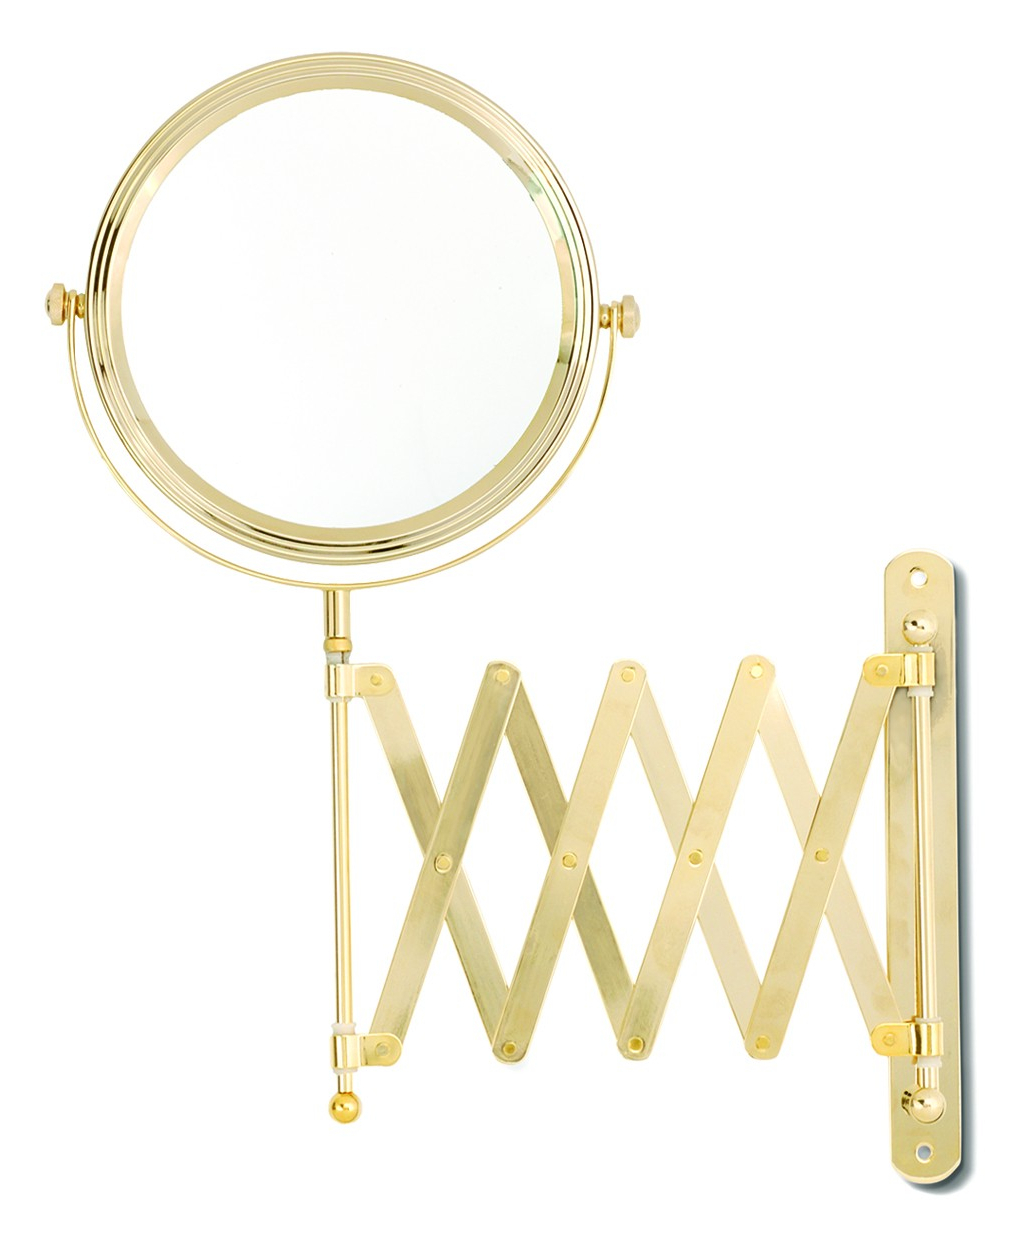 Beauty Beyond With Regard To Well Liked Extendable Wall Mirrors (View 5 of 20)